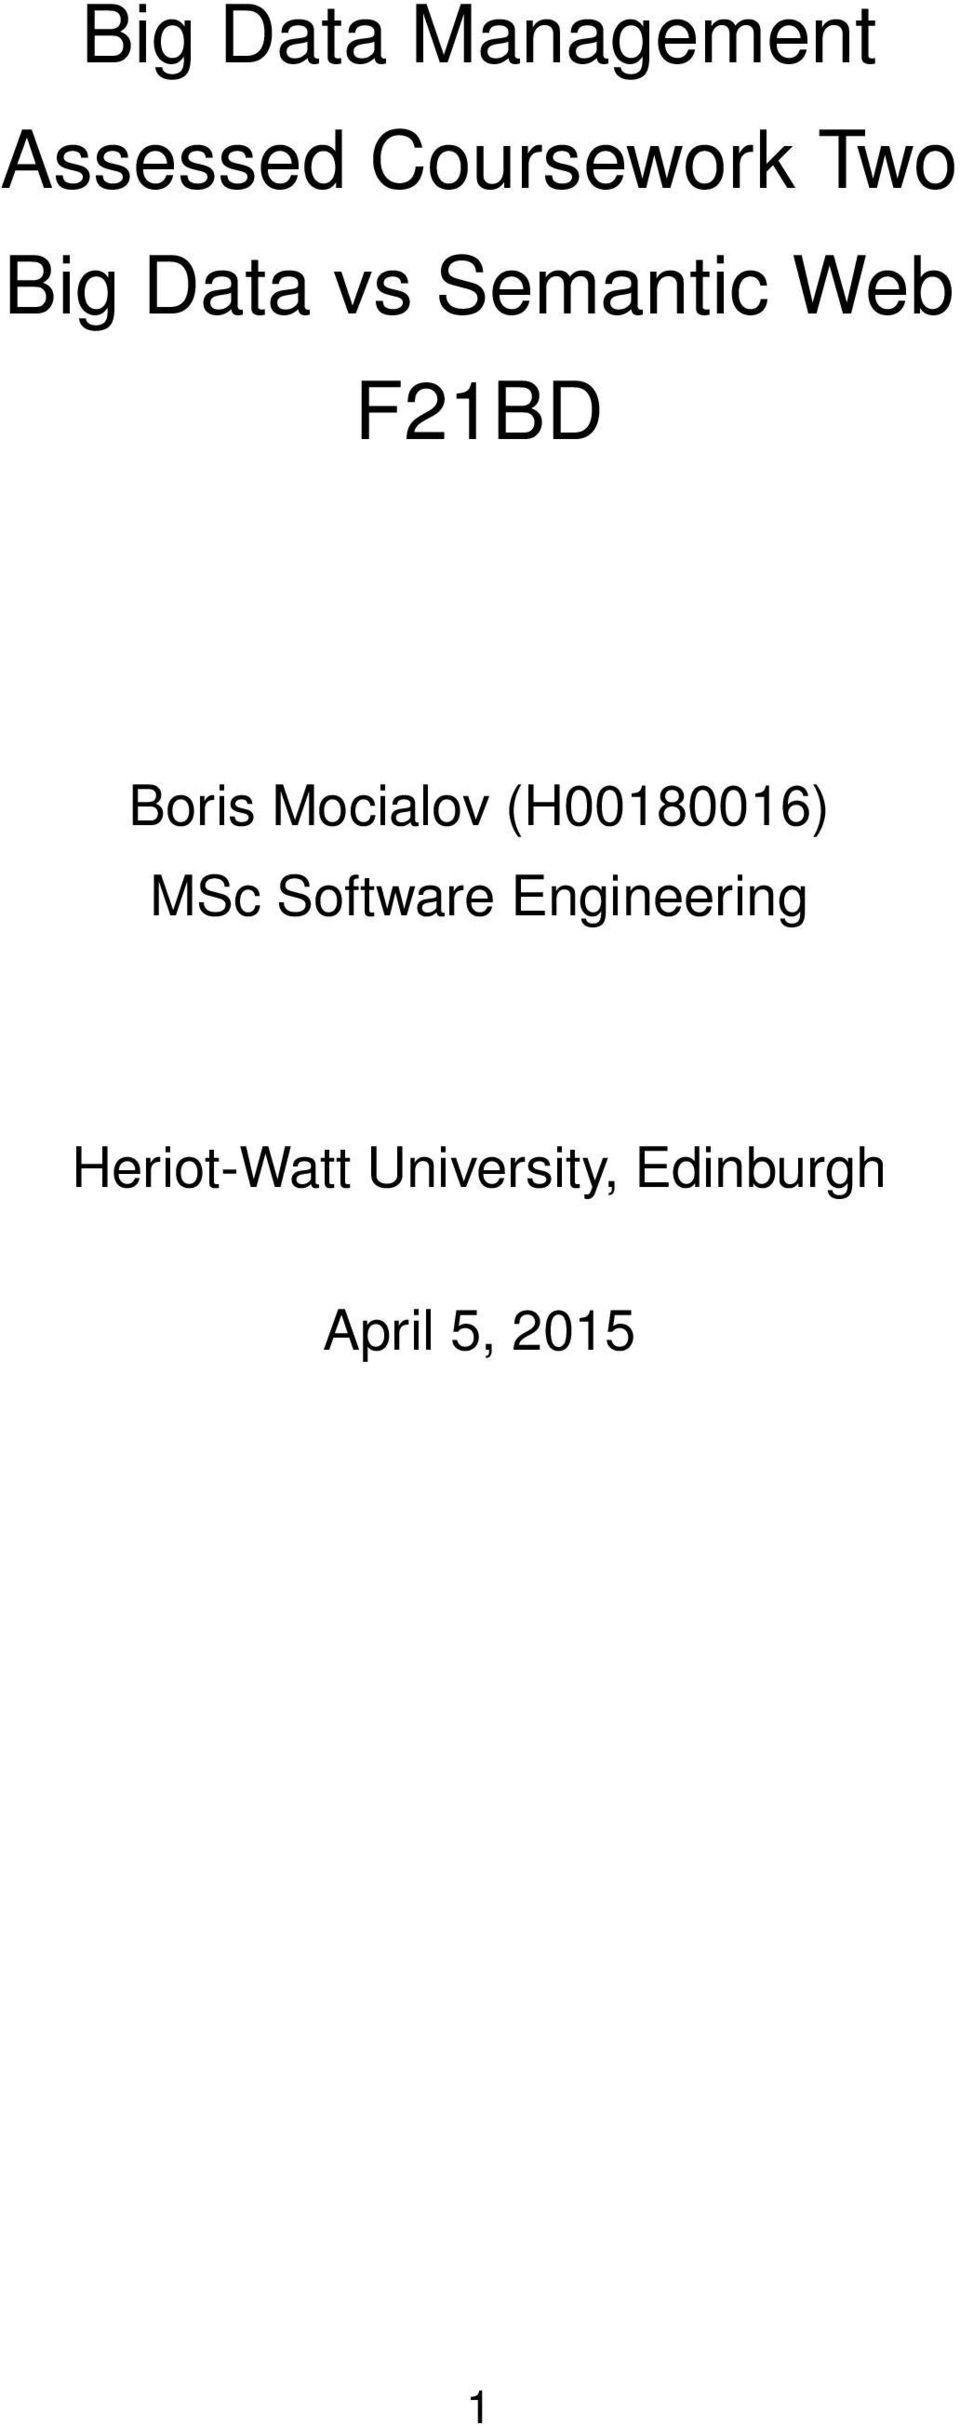 Mocialov (H00180016) MSc Software